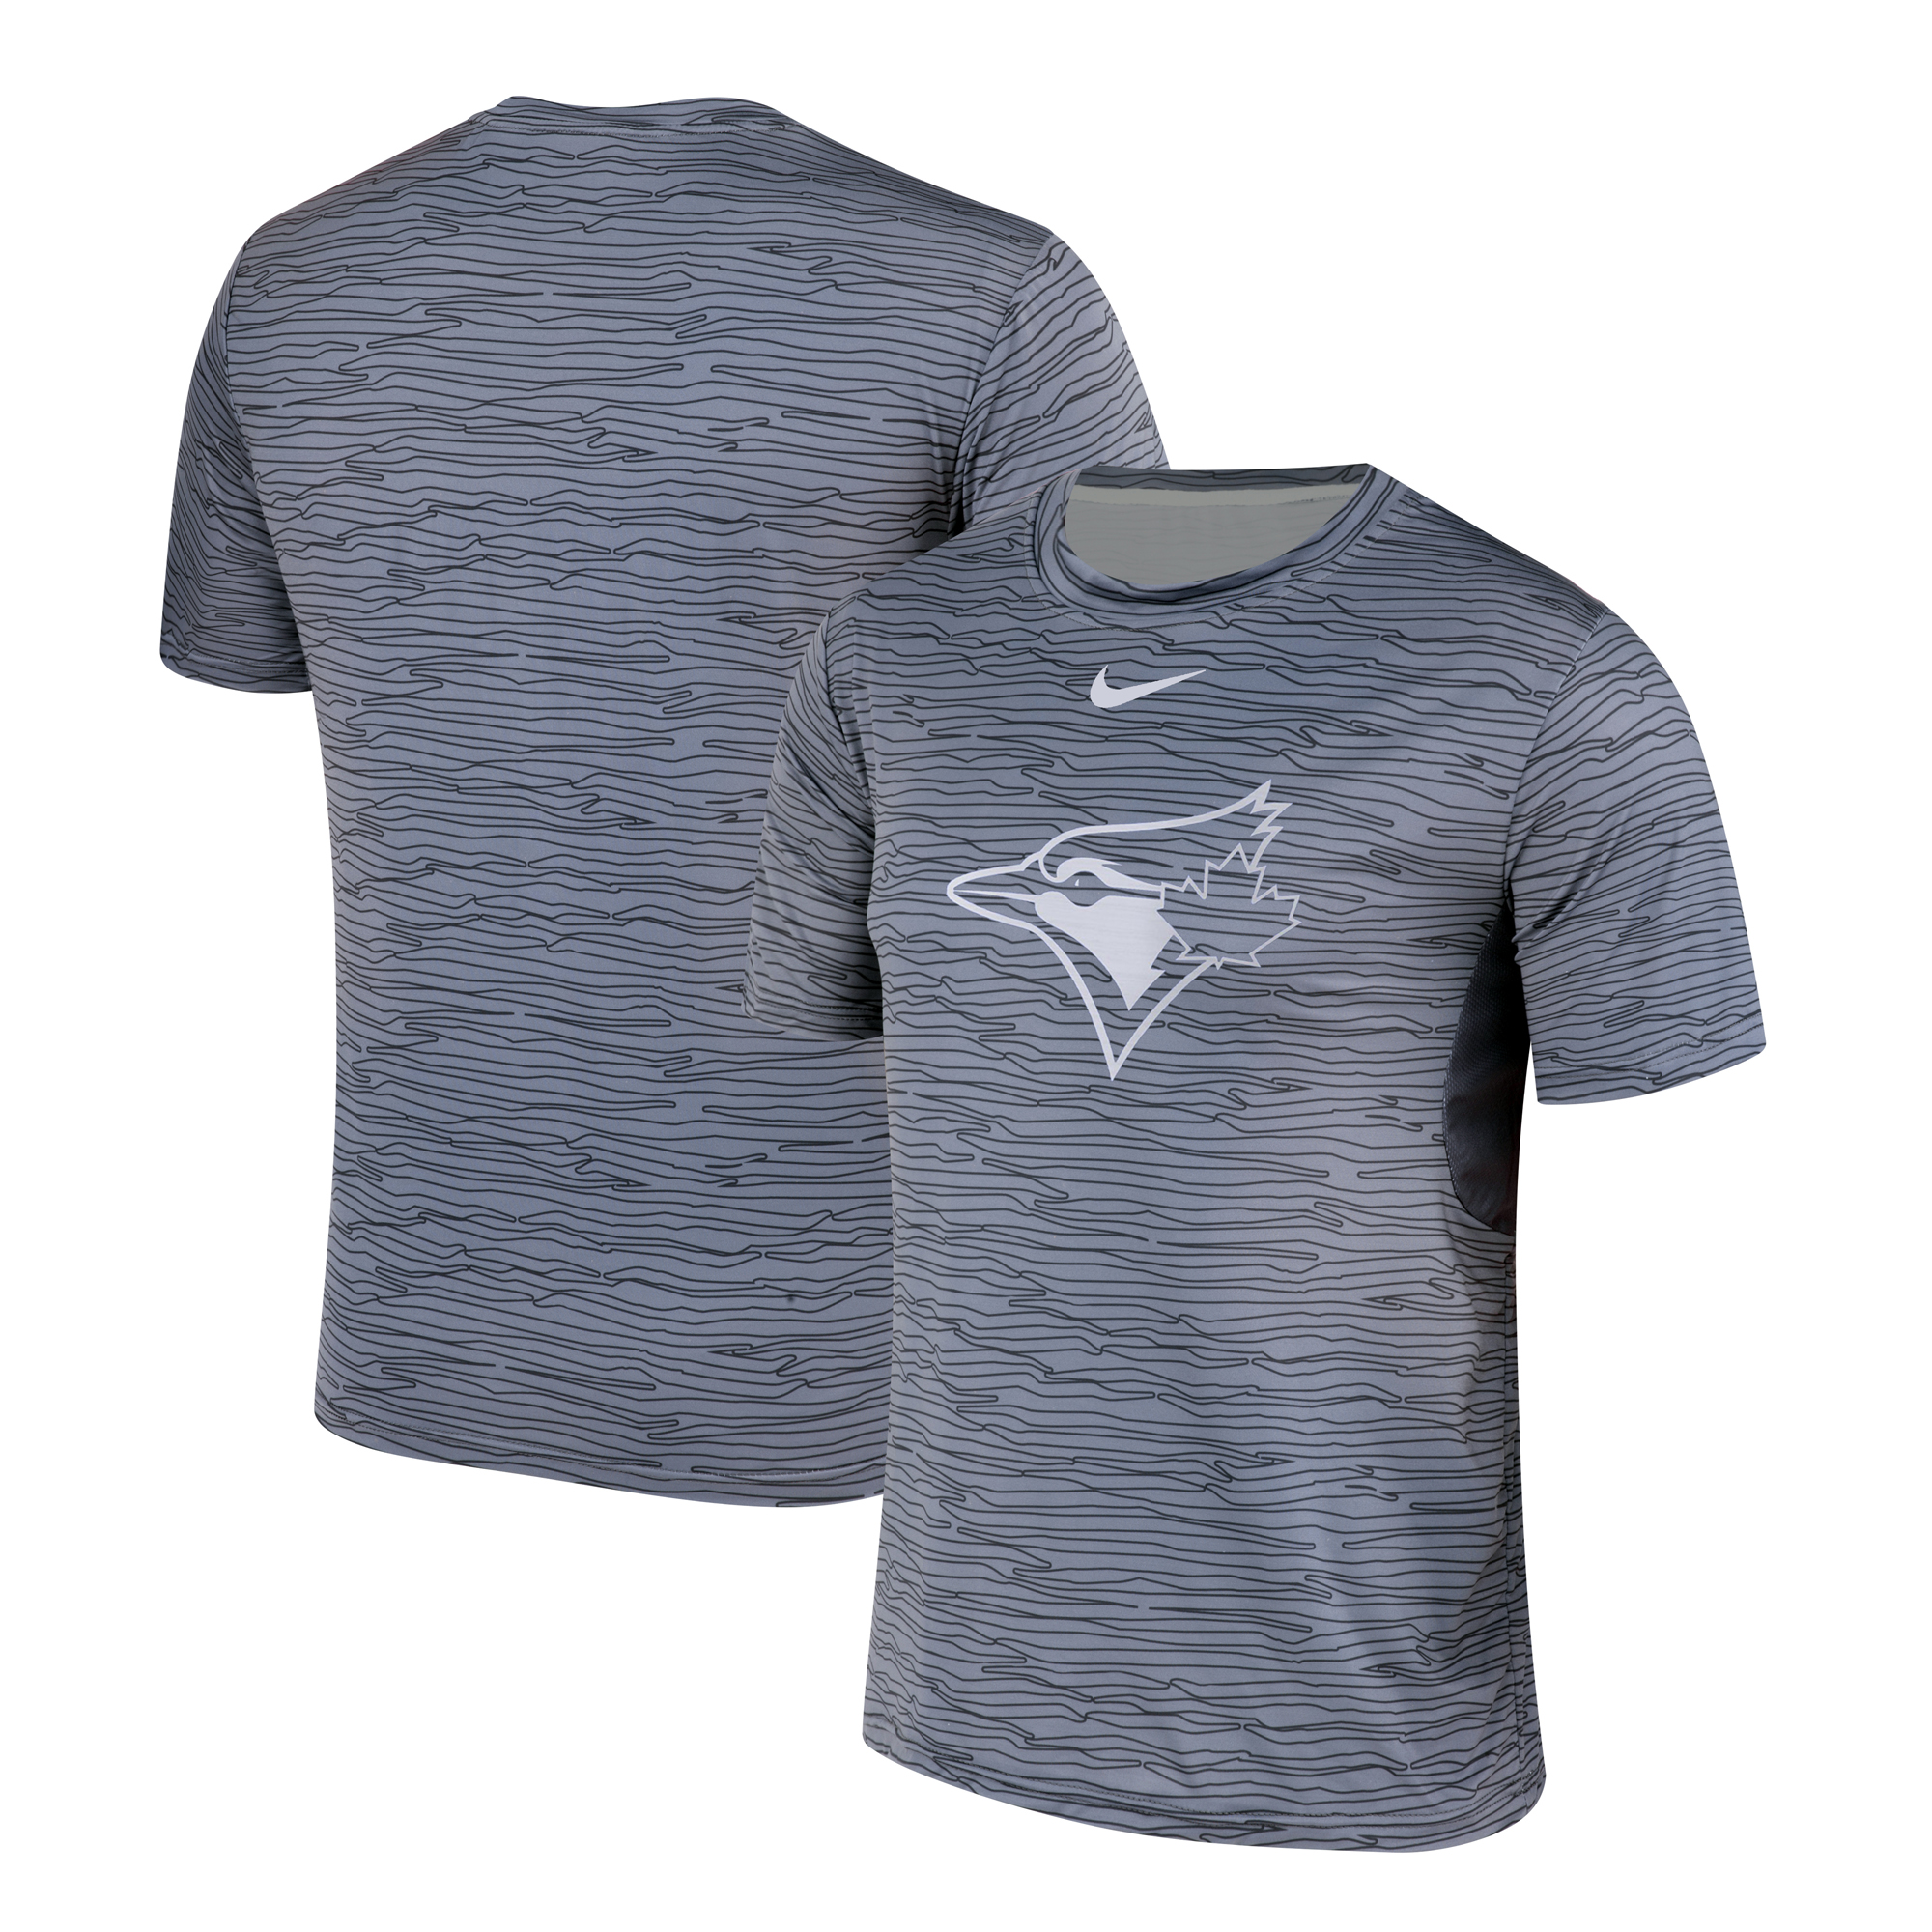 Nike Toronto Blue Jays Gray Black Striped Logo Performance T-Shirt